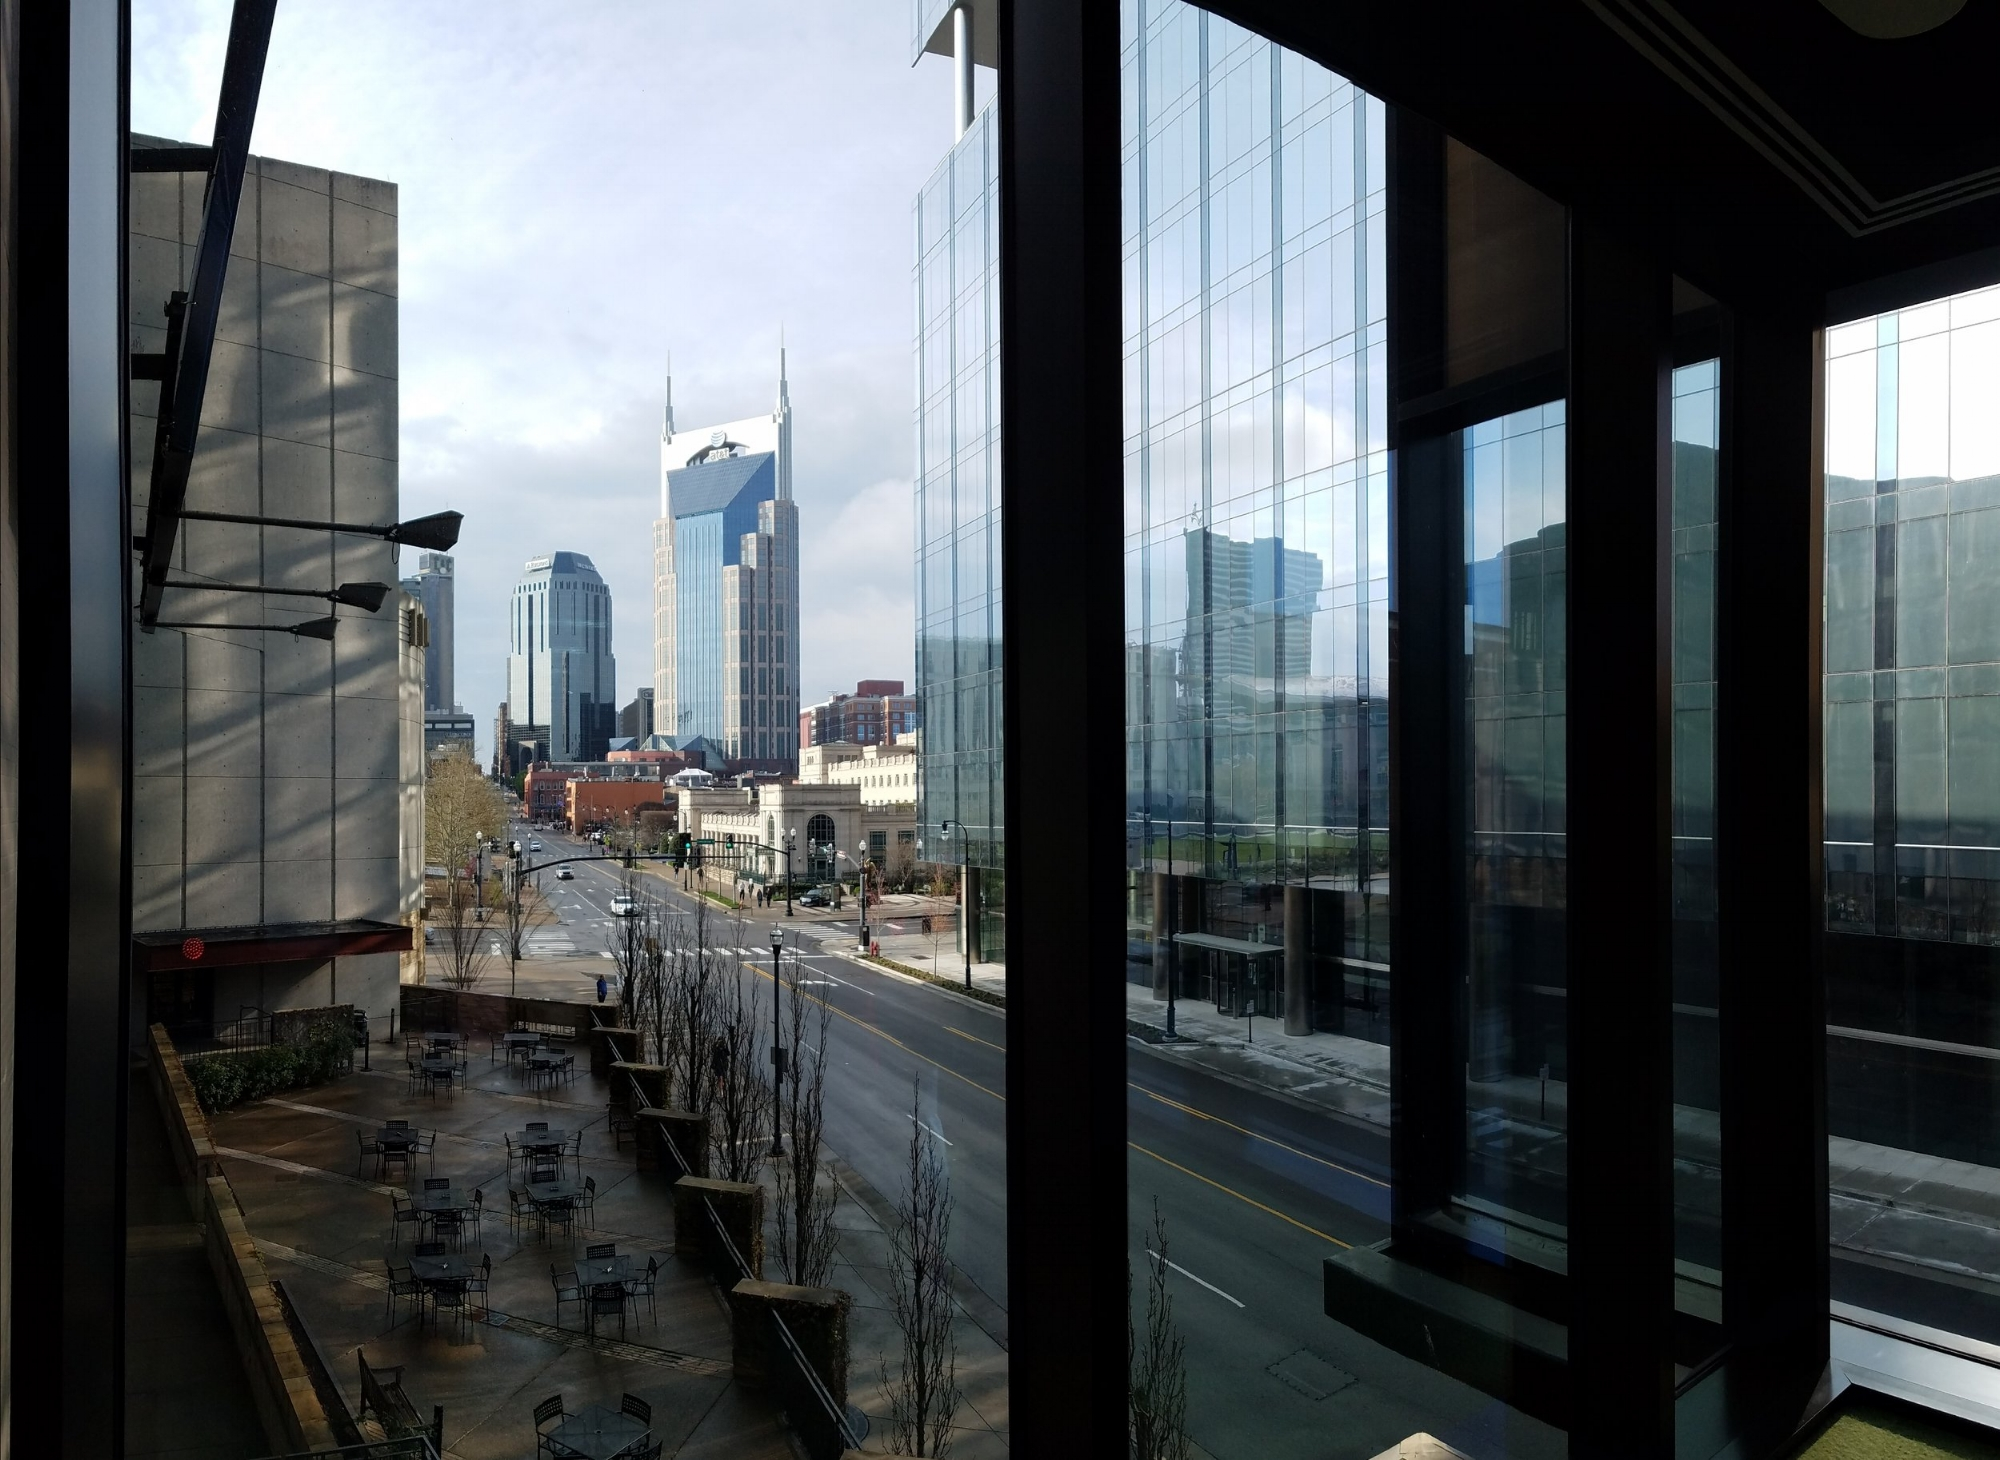 Looking northwest down 4th Avenue from inside the Country Music Hall of Fame and Museum